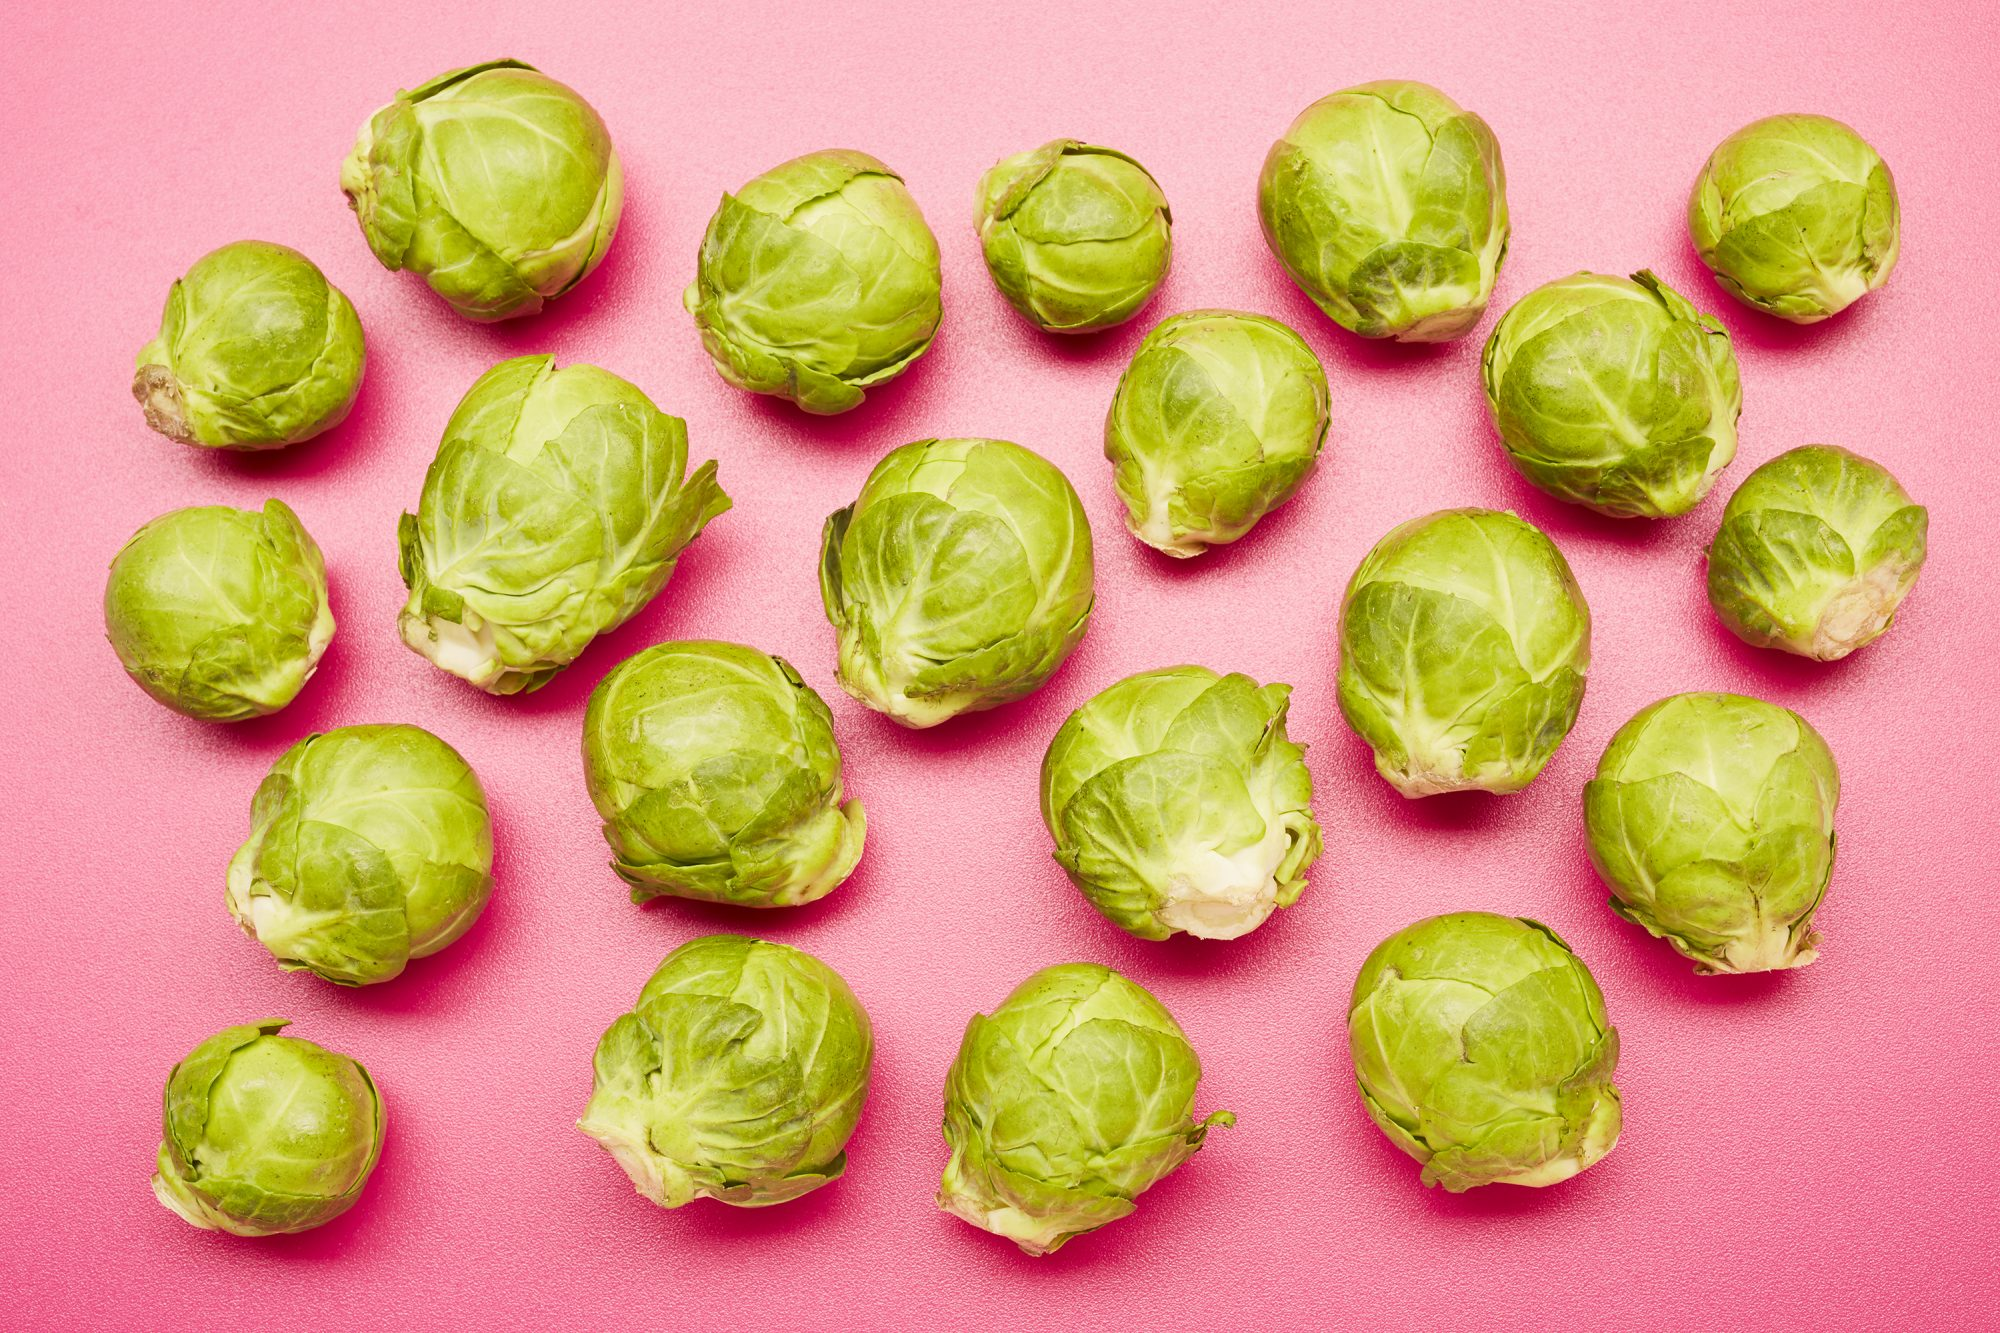 Are Brussels sprouts good for you? brussels sprouts on a pink background